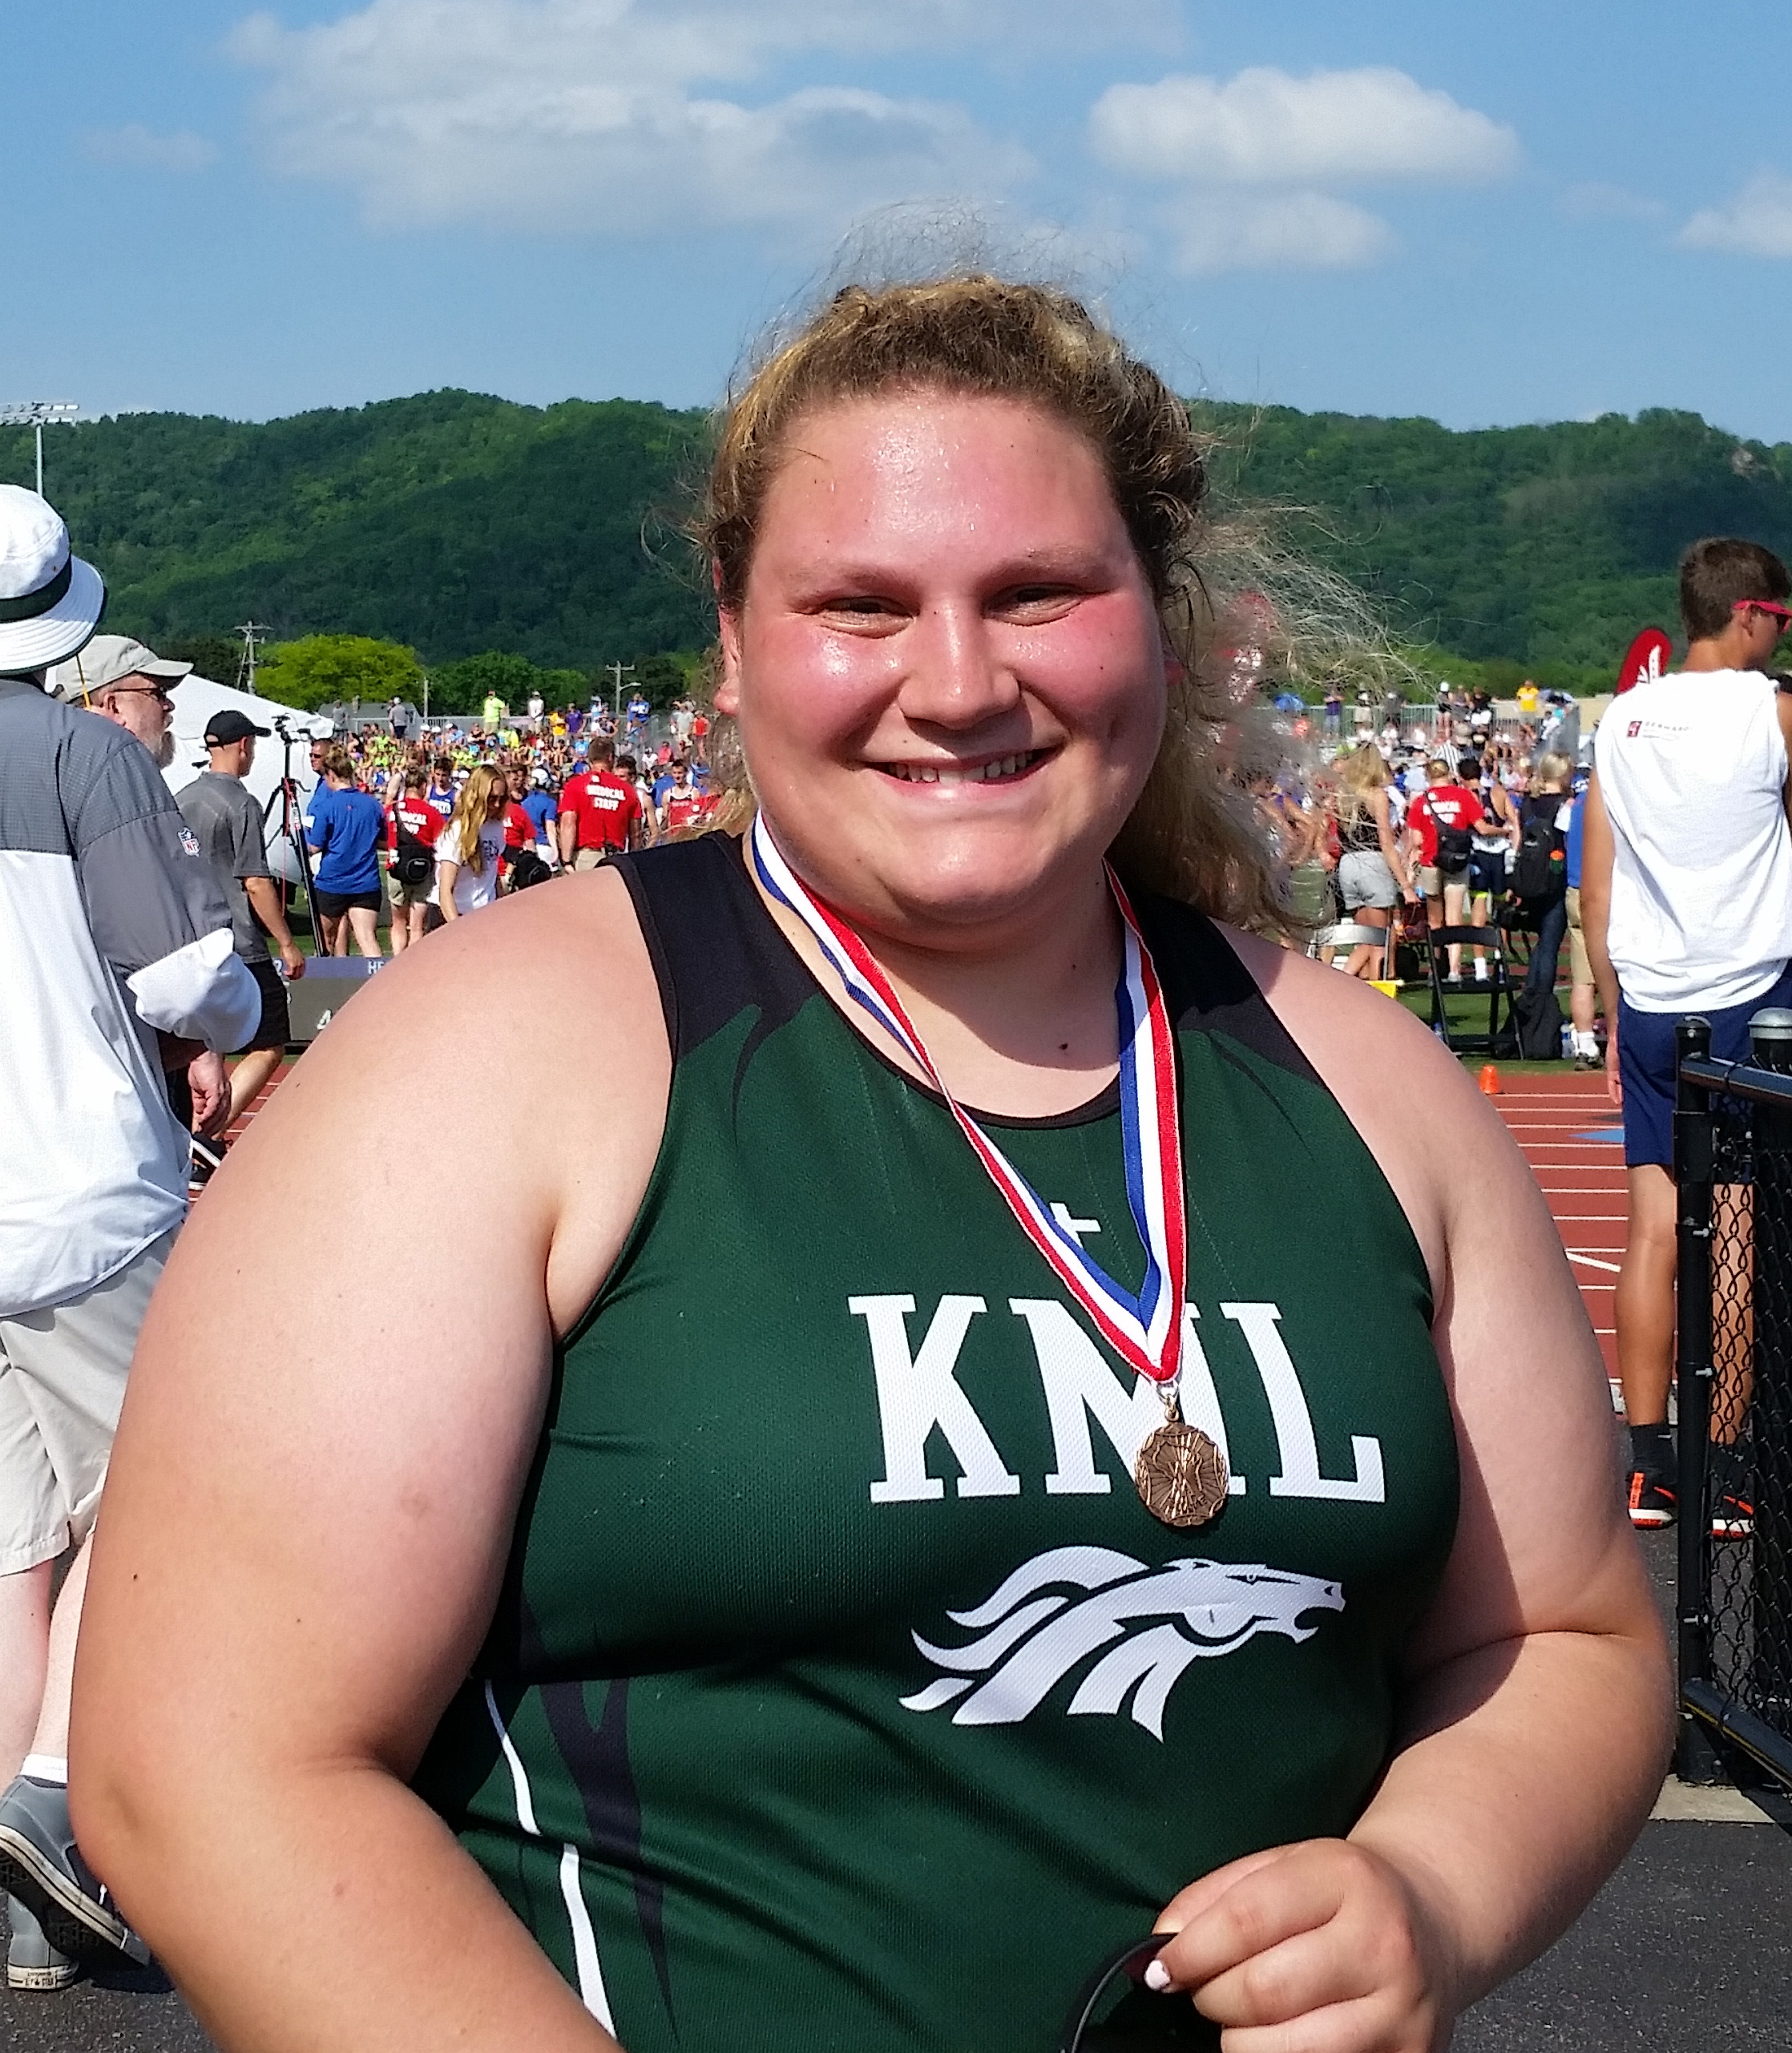 Kary Finishes 3rd at STATE